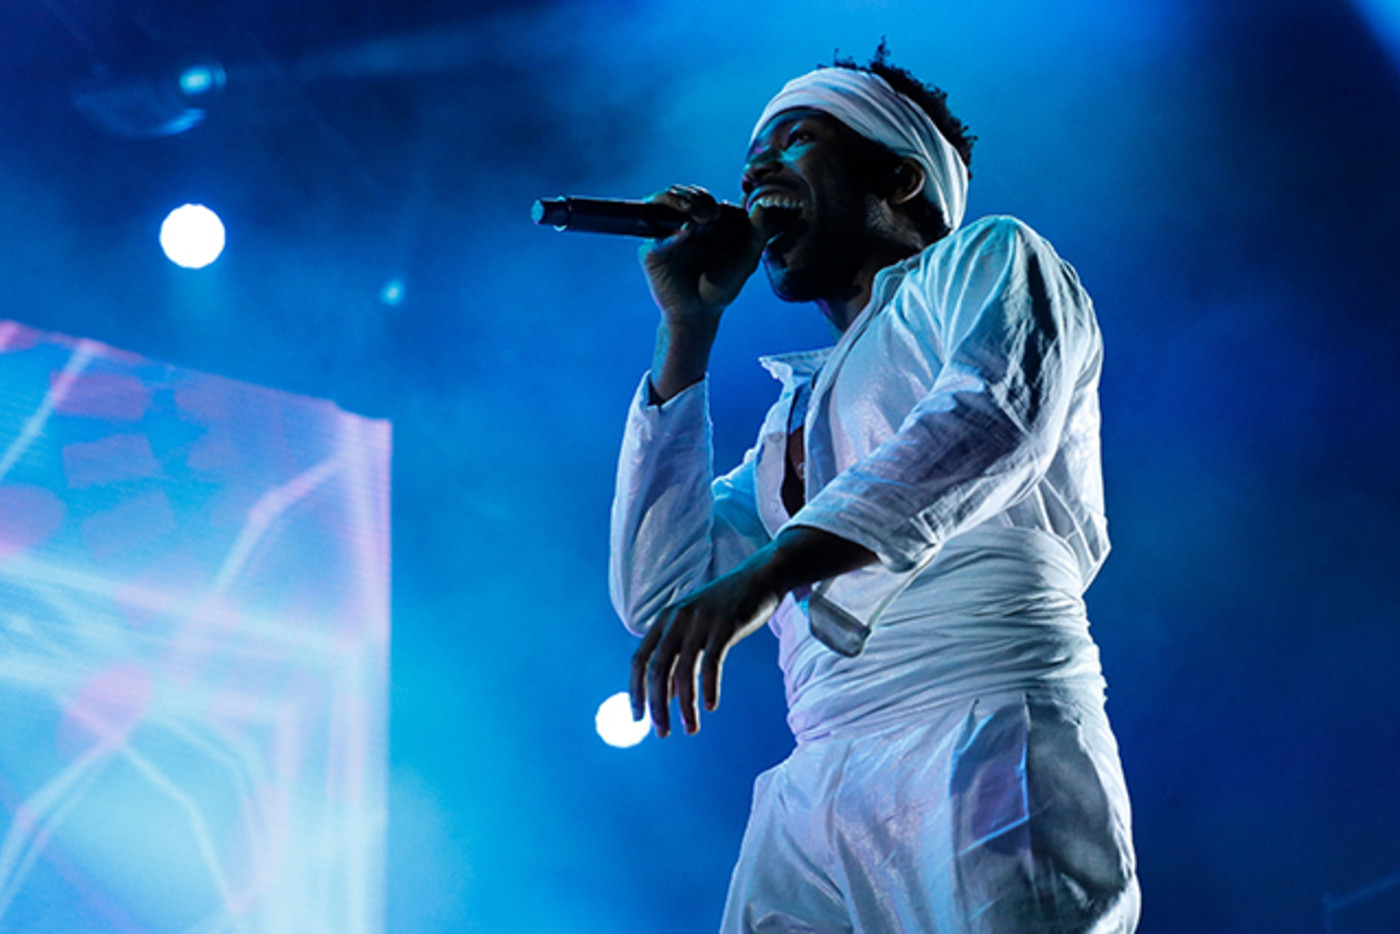 Childish Gambino at 2017 Governors Ball Music Festival - Day 2